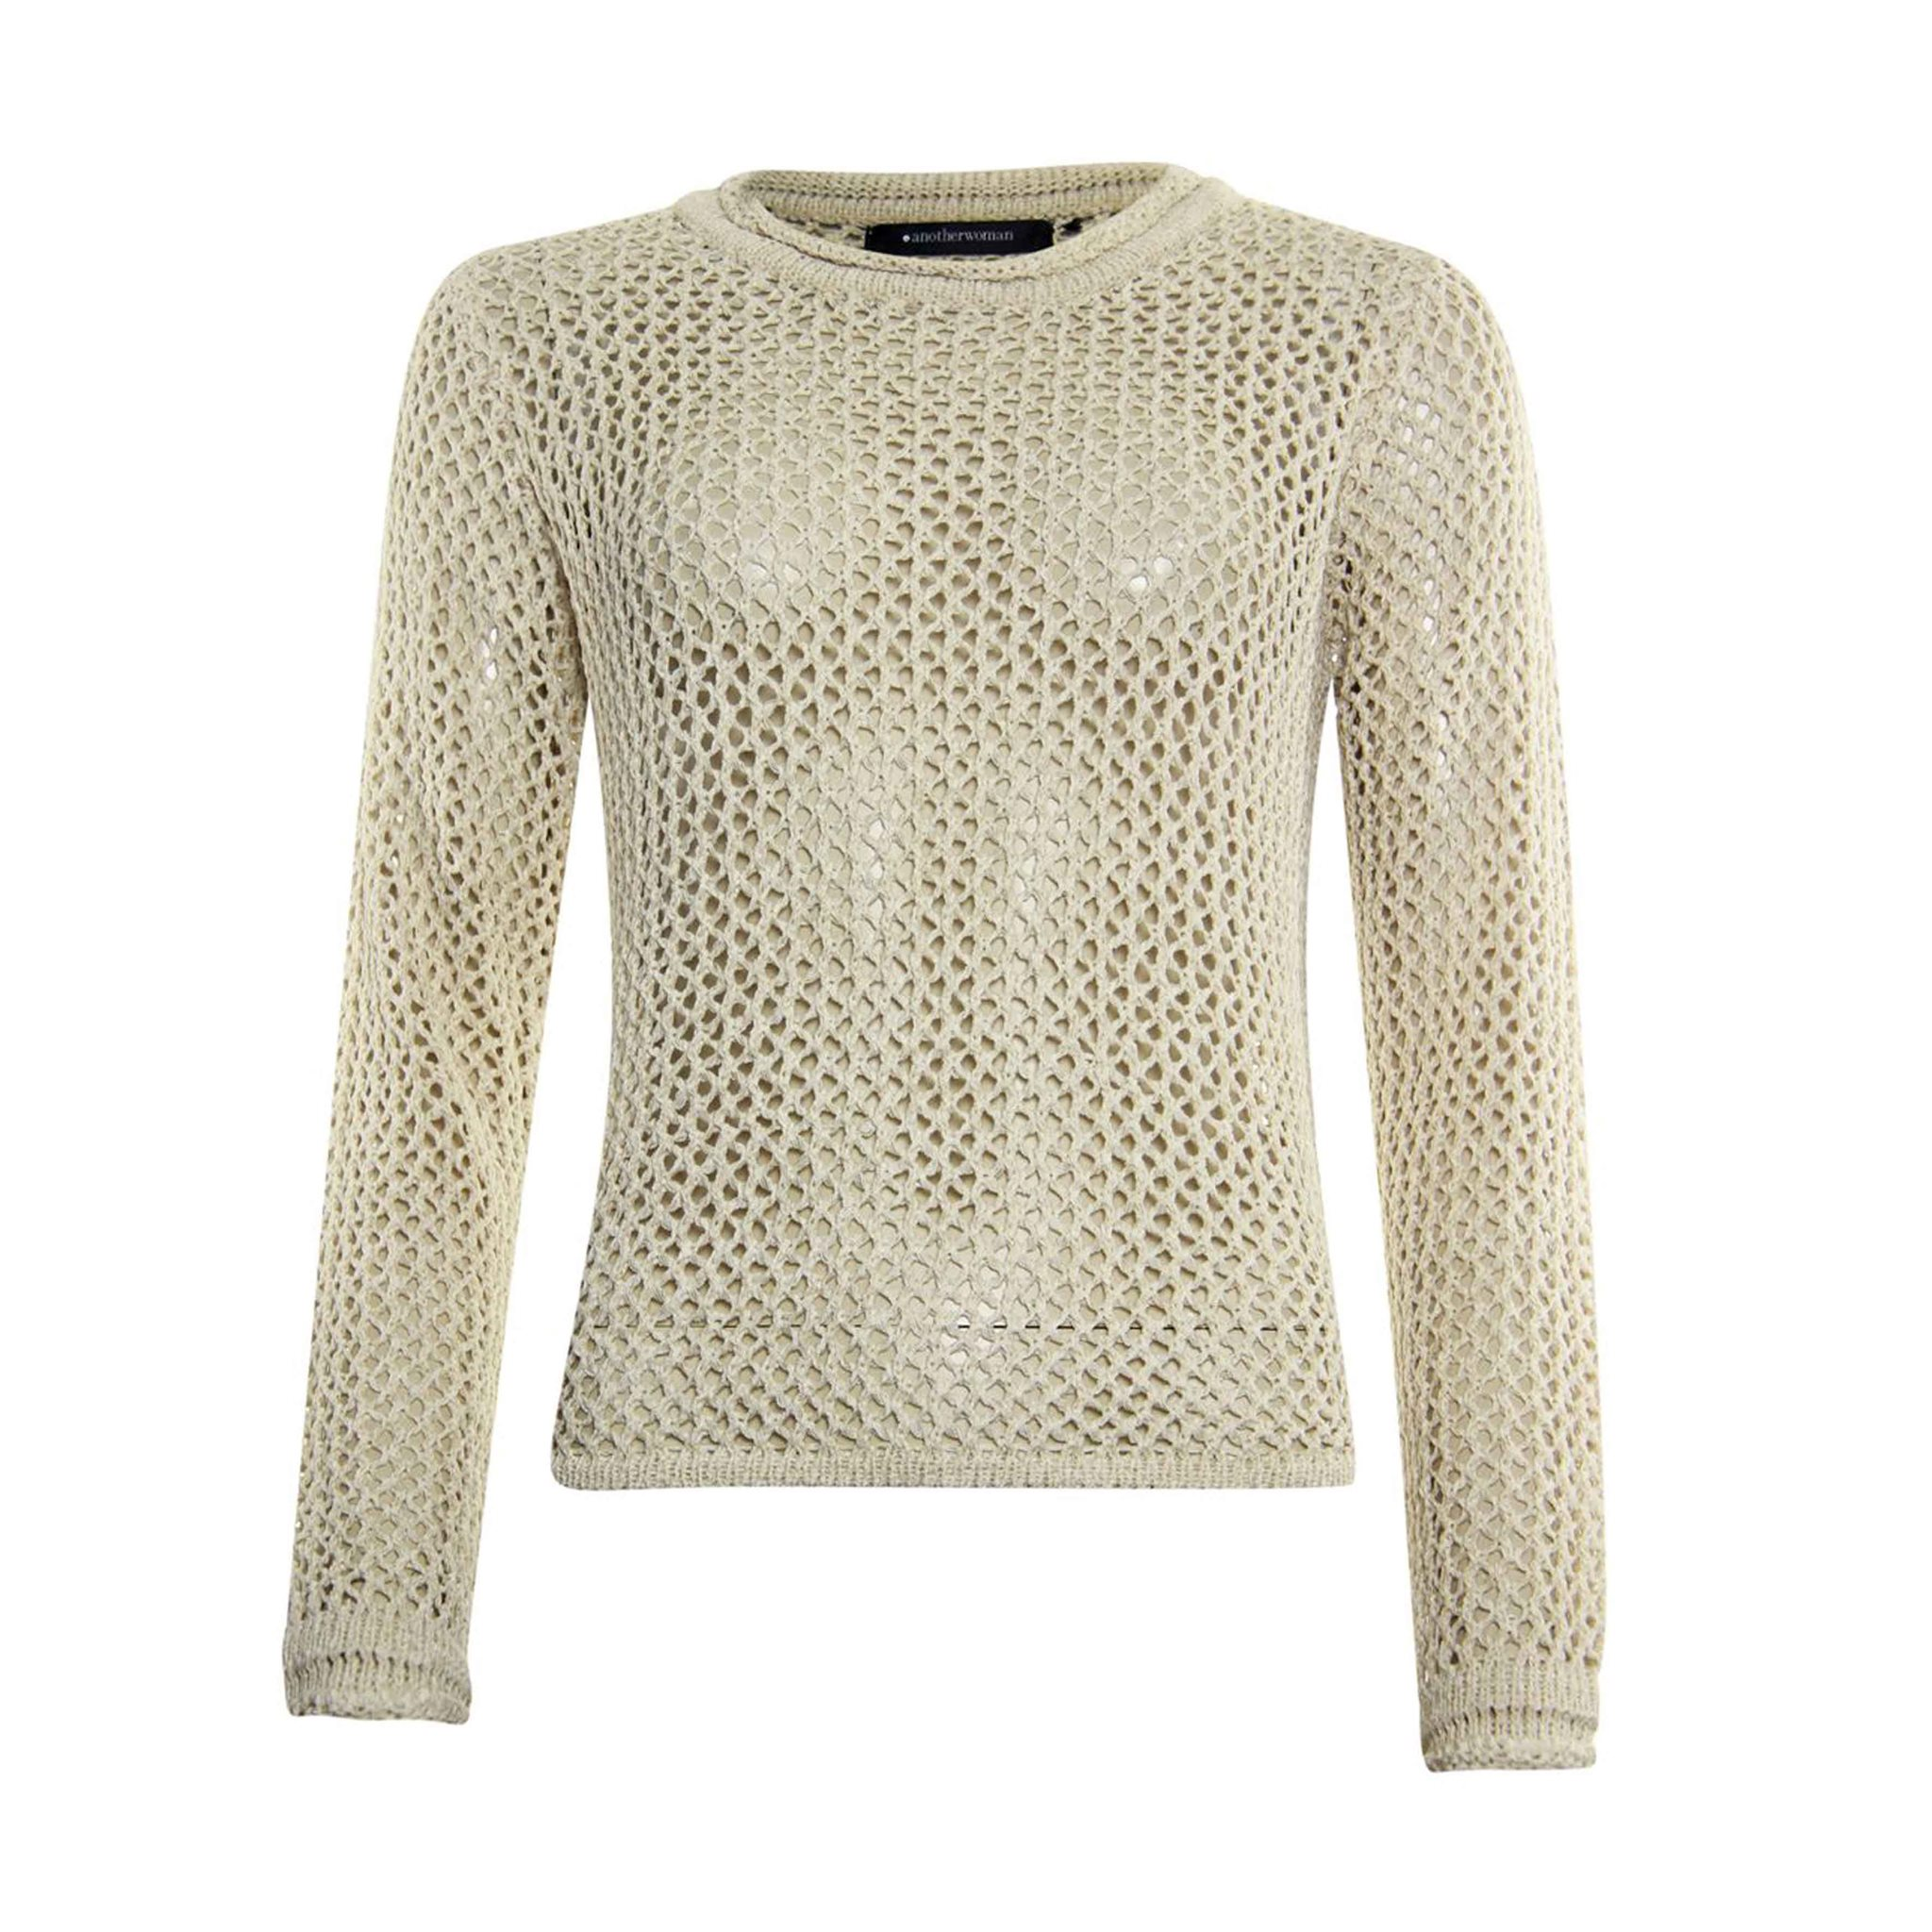 Pullover o-neck ANOTHERWOMAN